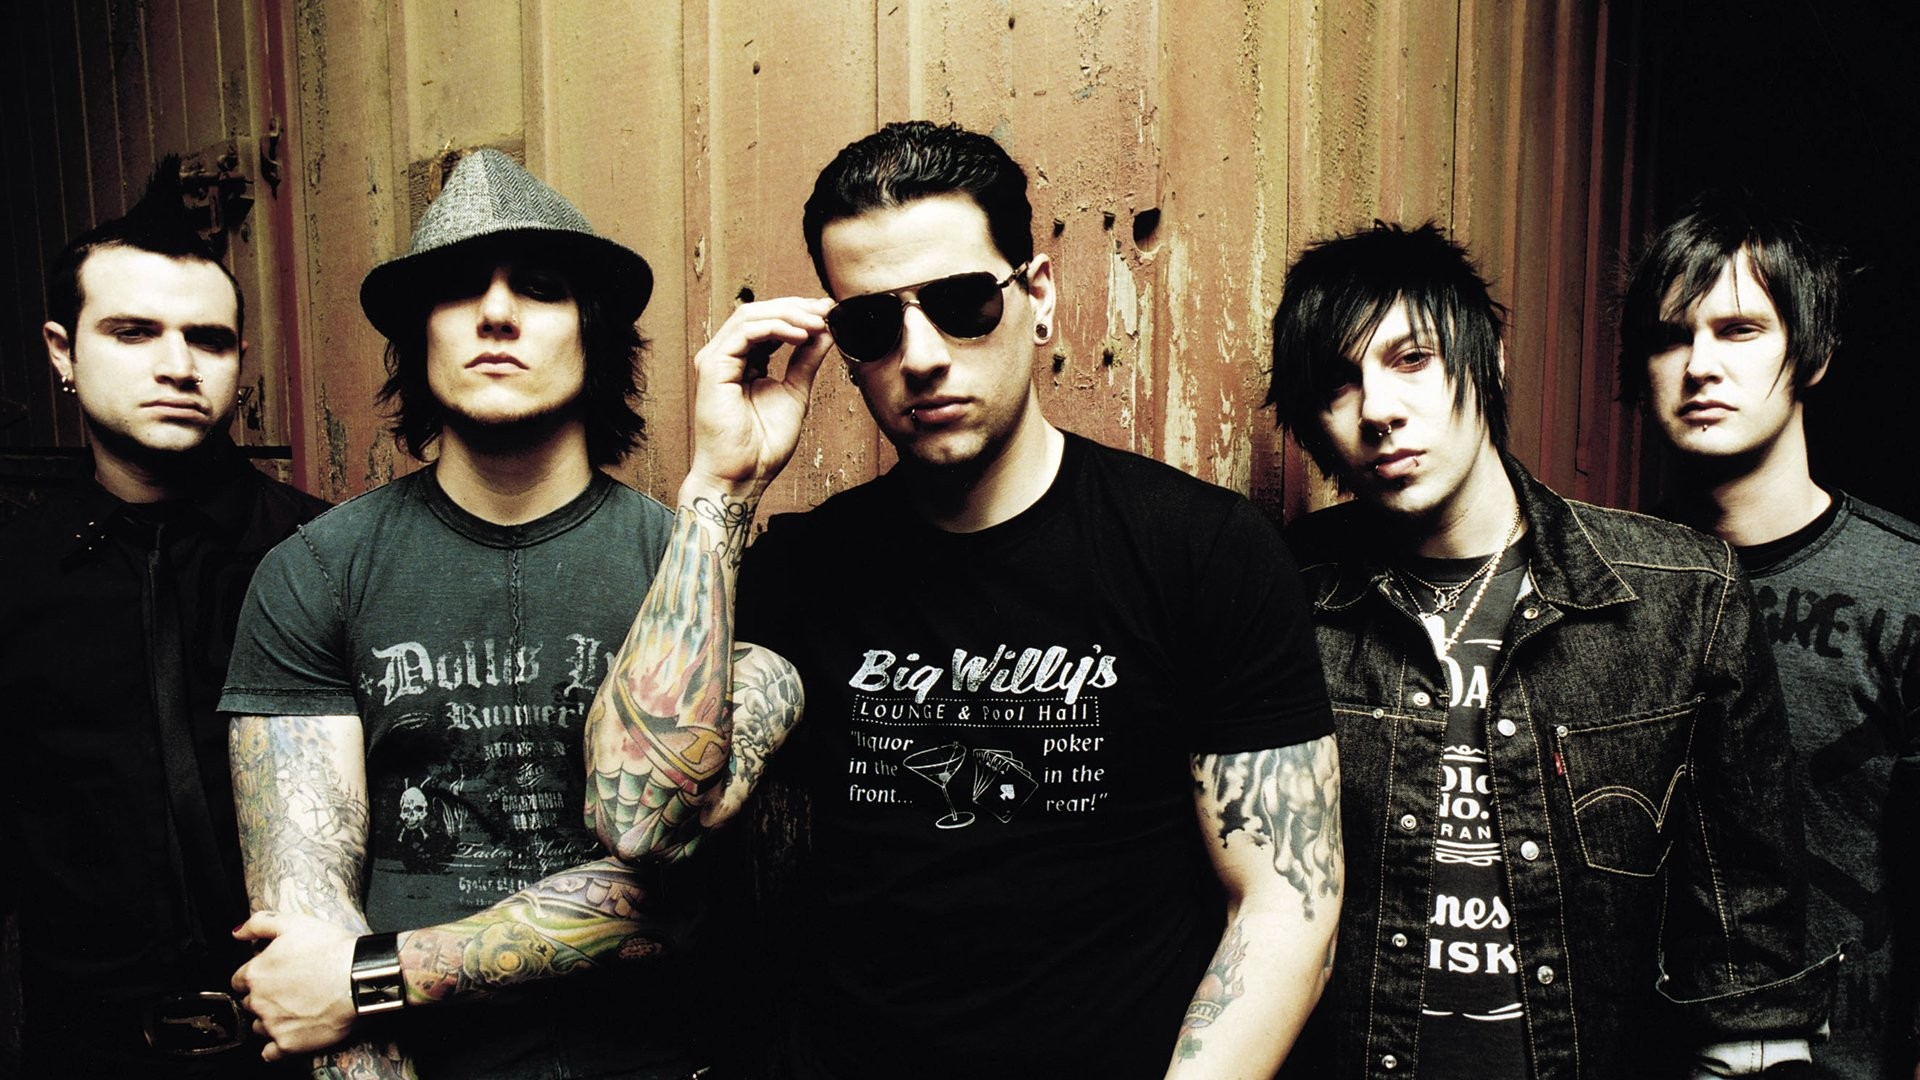 Avenged Sevenfold Wallpaper 1 Download Free Cool HD Backgrounds